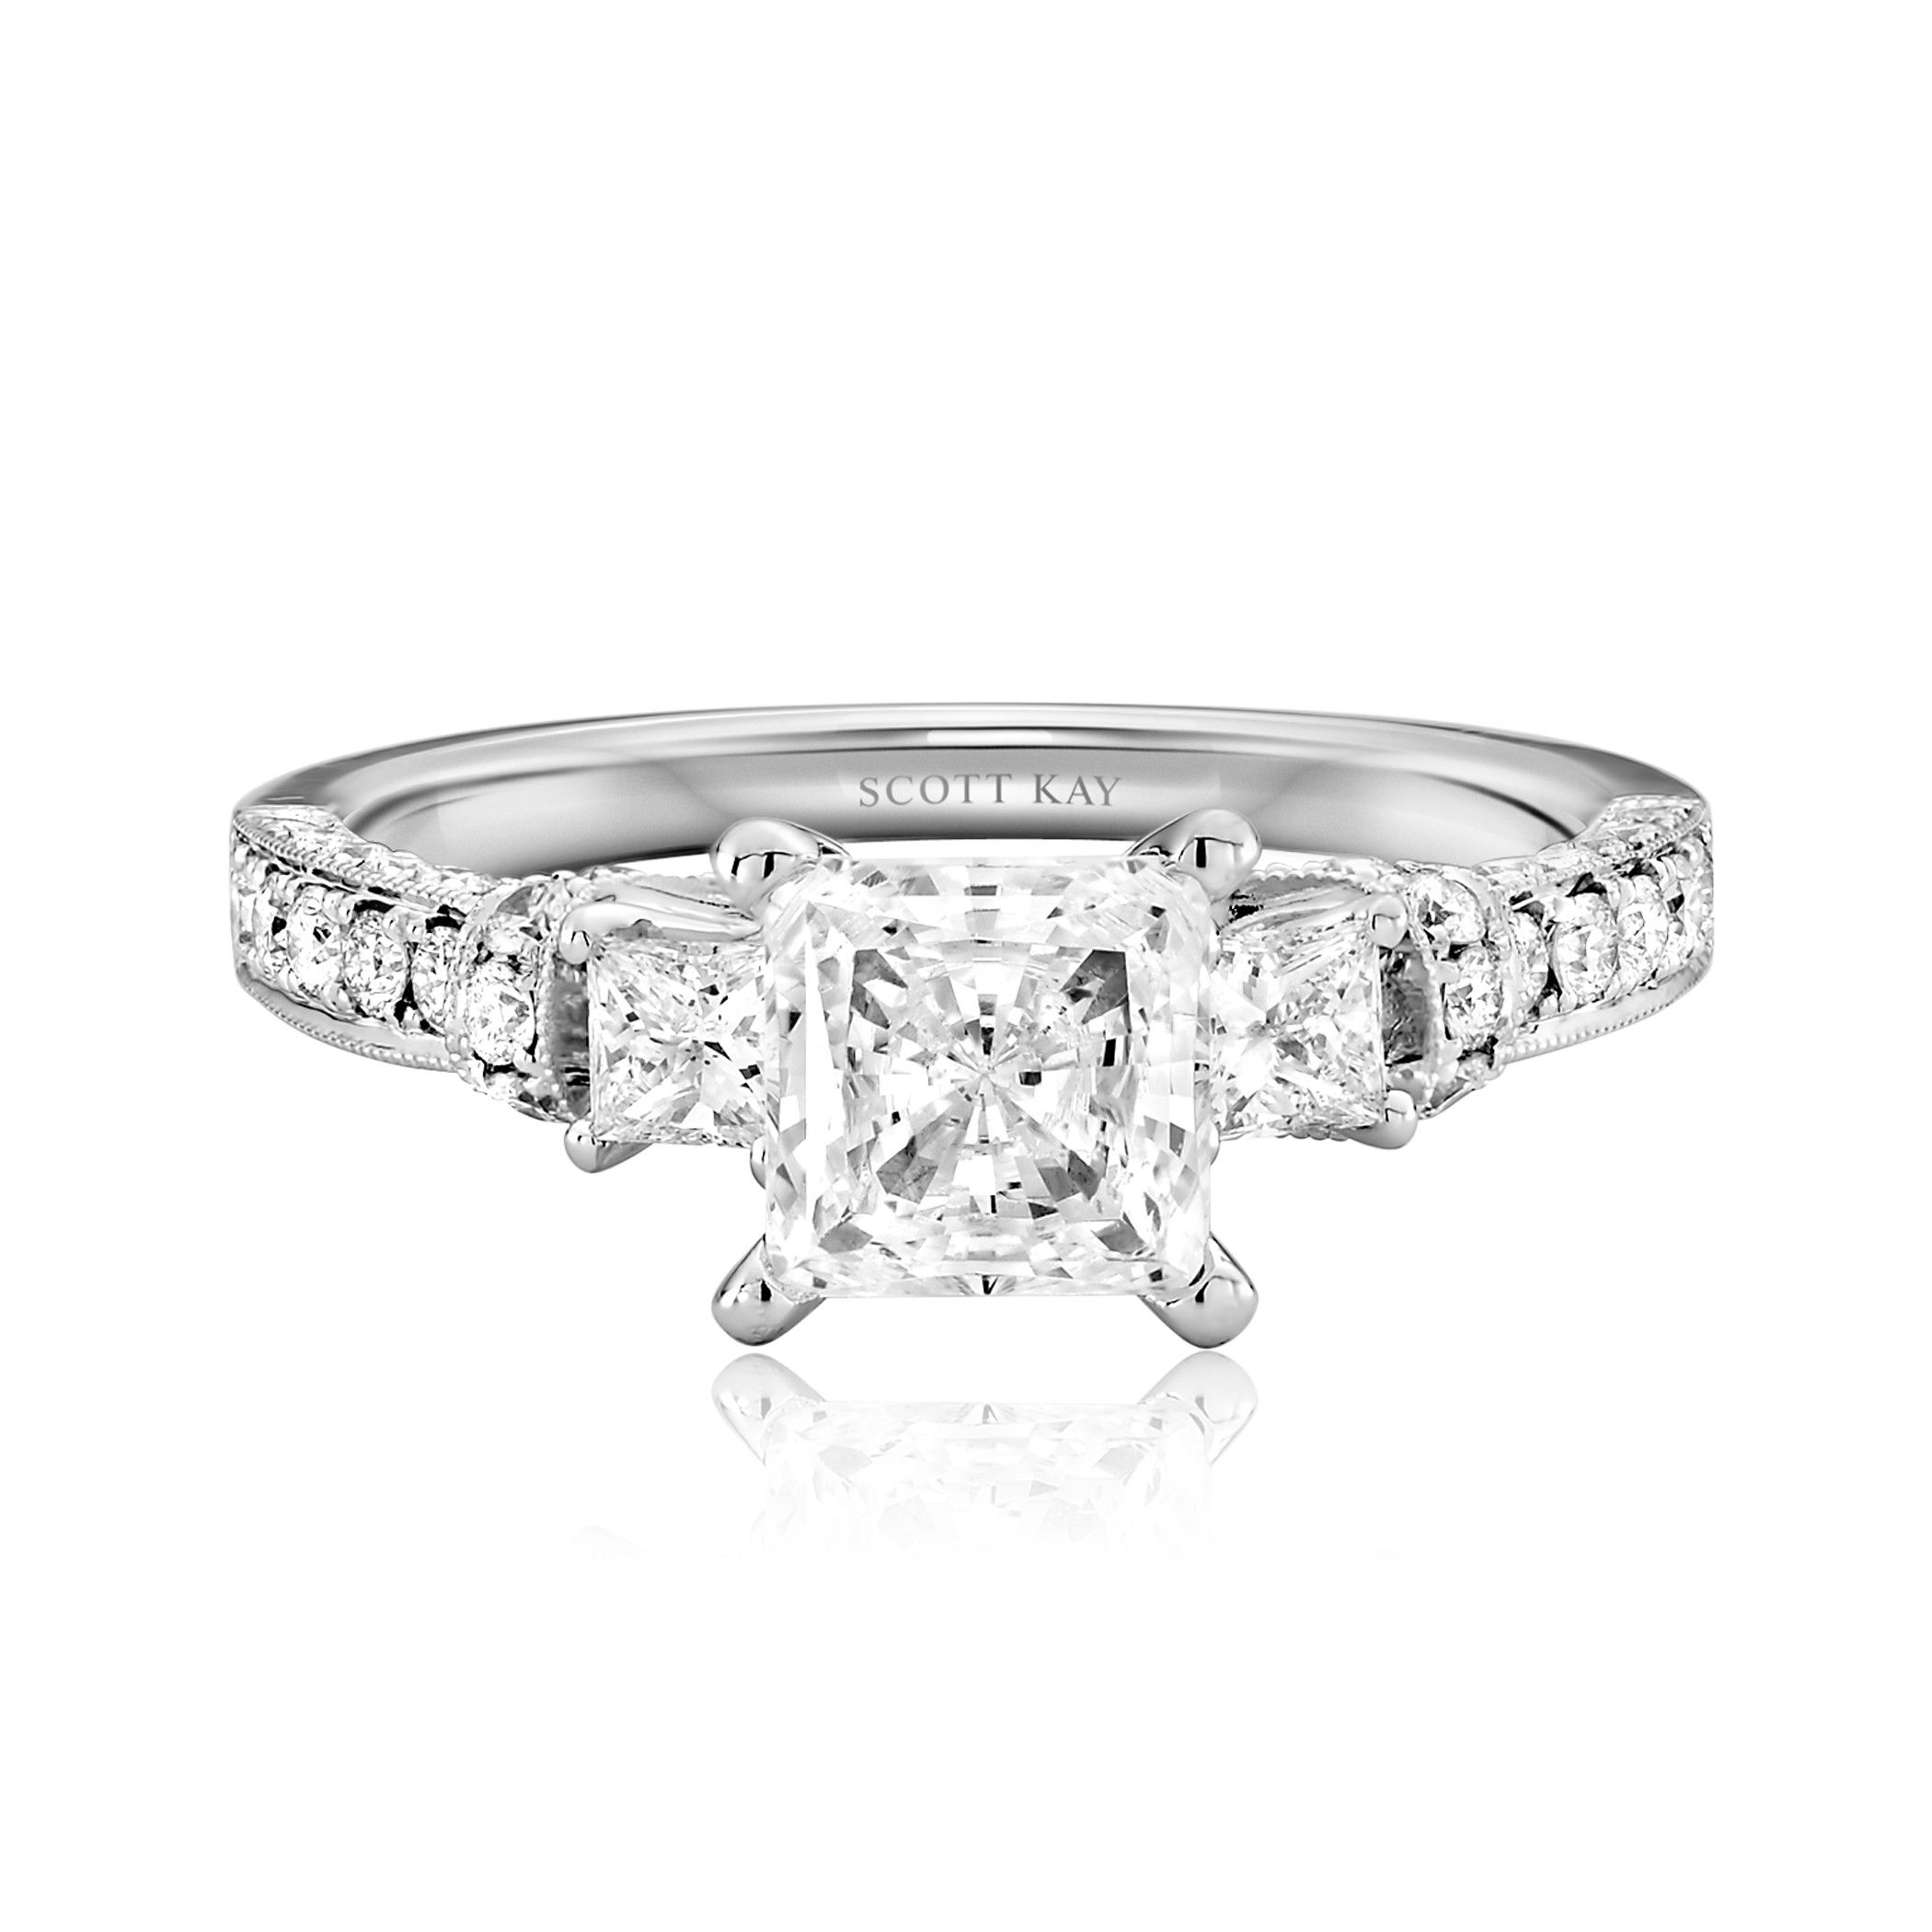 scott kay pinterest of econtechvn engagement rings scottkaybride com best